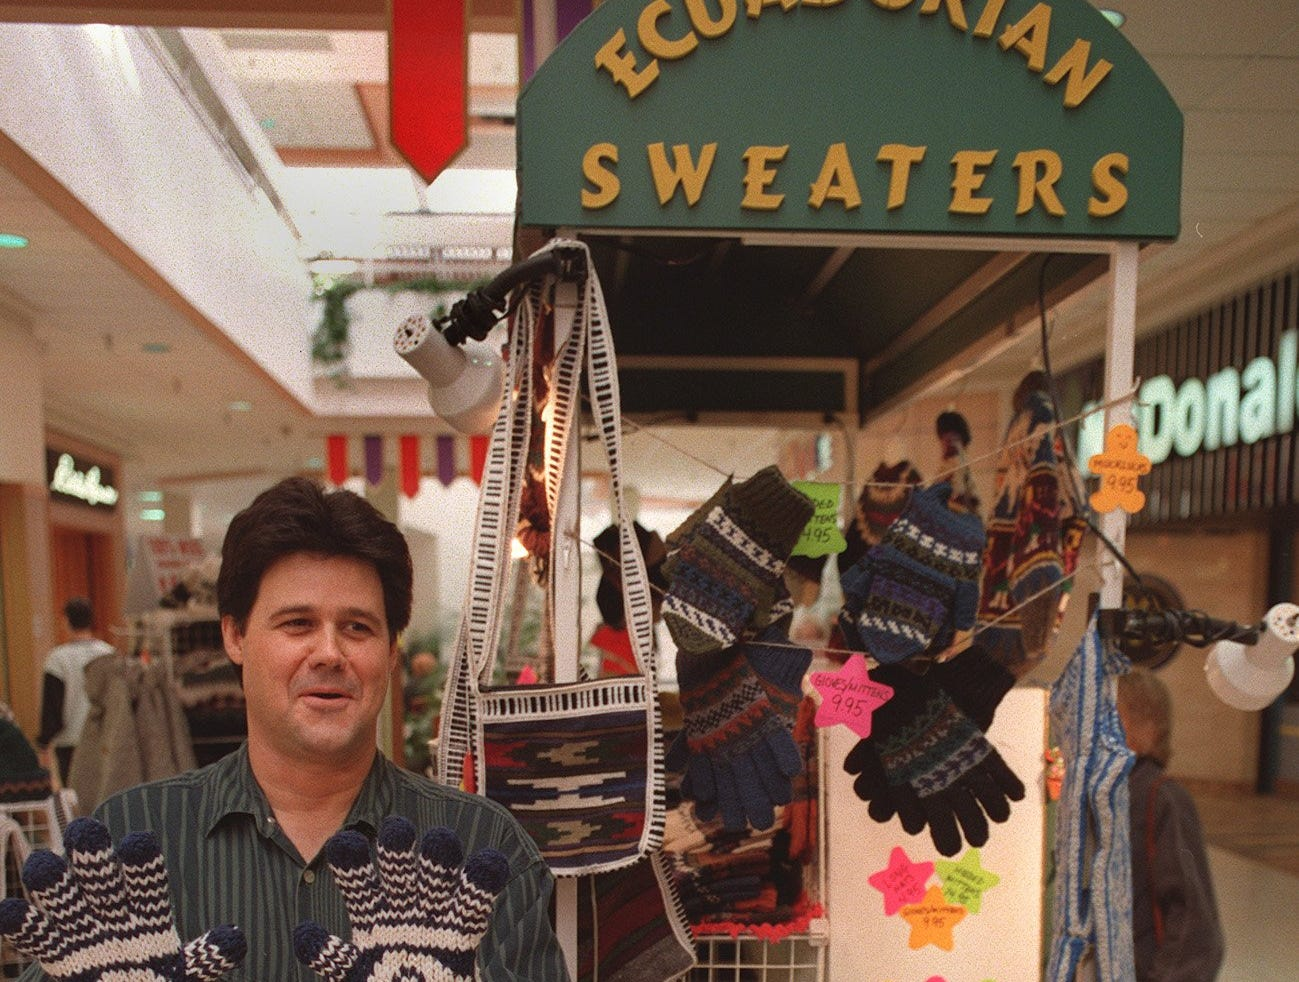 Thomas Gillham shows off warm, hand-knit mittens from Ecuador at his Caravan International temporary kiosk on the bottom level of Valley West Mall on Nov. 17, 1997.